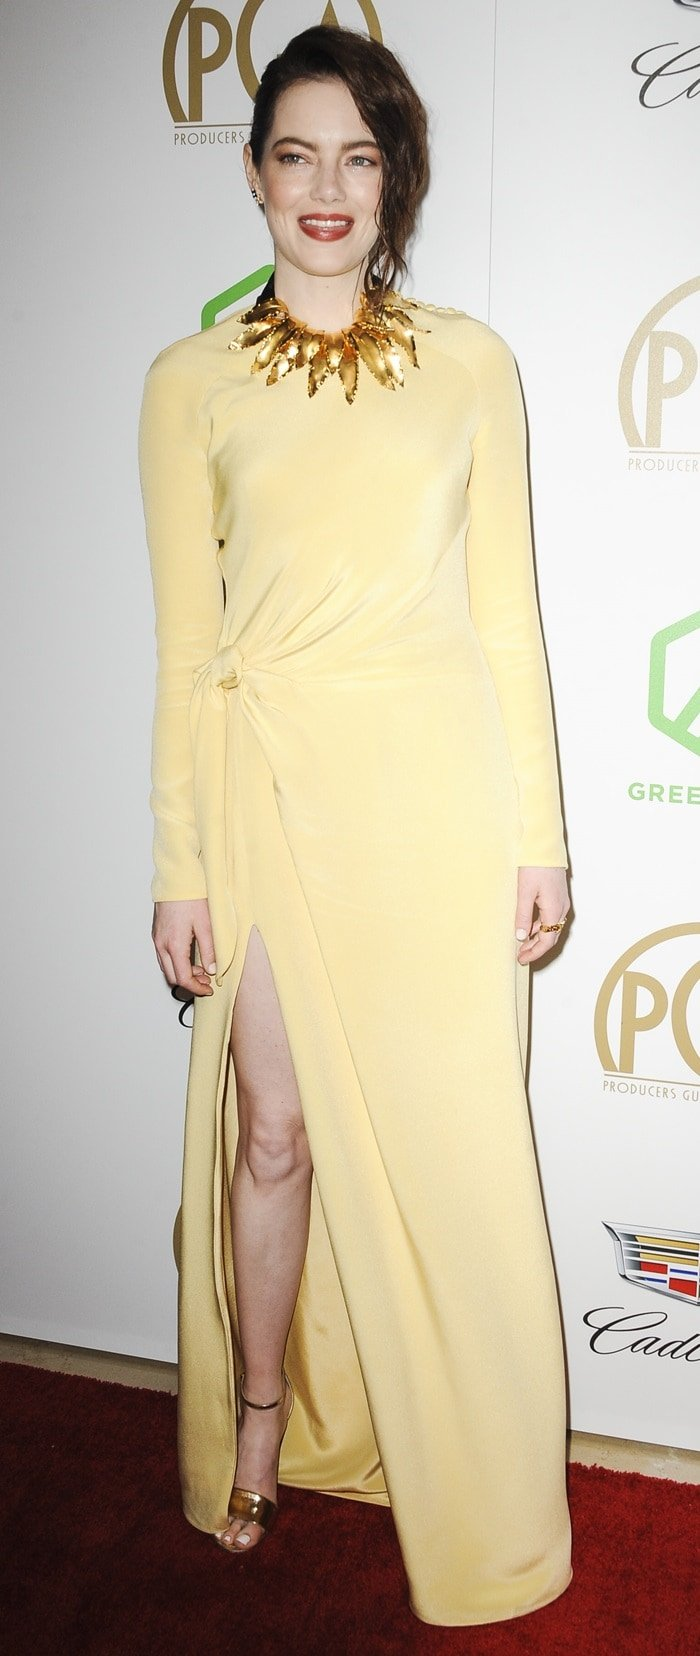 Emma Stone's pale yellow gown at the 2019 Producers Guild Awards at the Beverly Hilton Hotel in Beverly Hills, California, on January 19, 2019